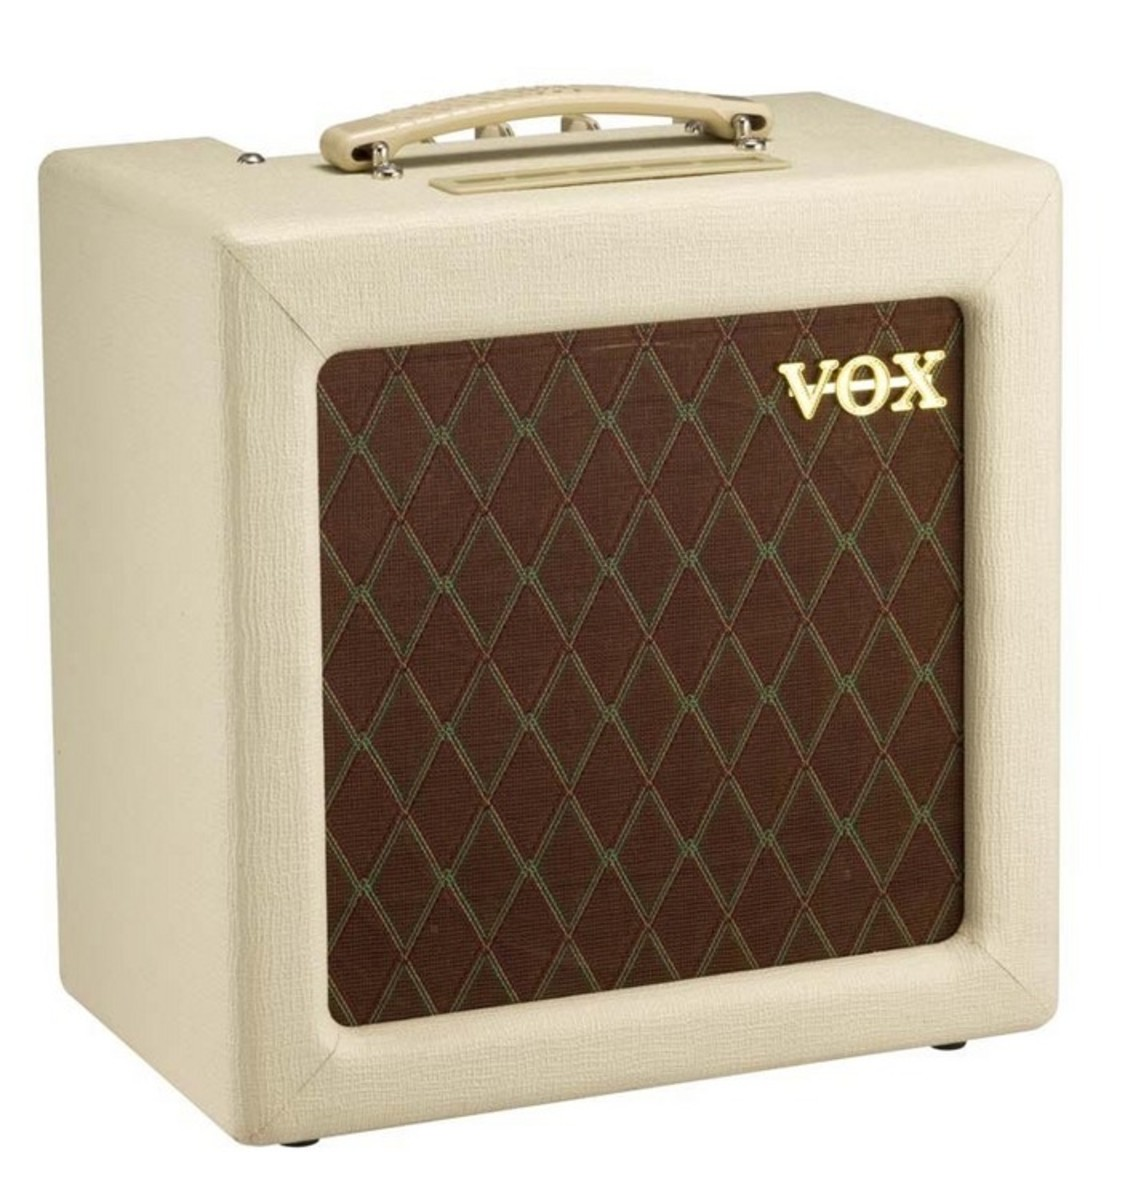 Celestion - PA Speakers and Drivers - Guitar Speakers